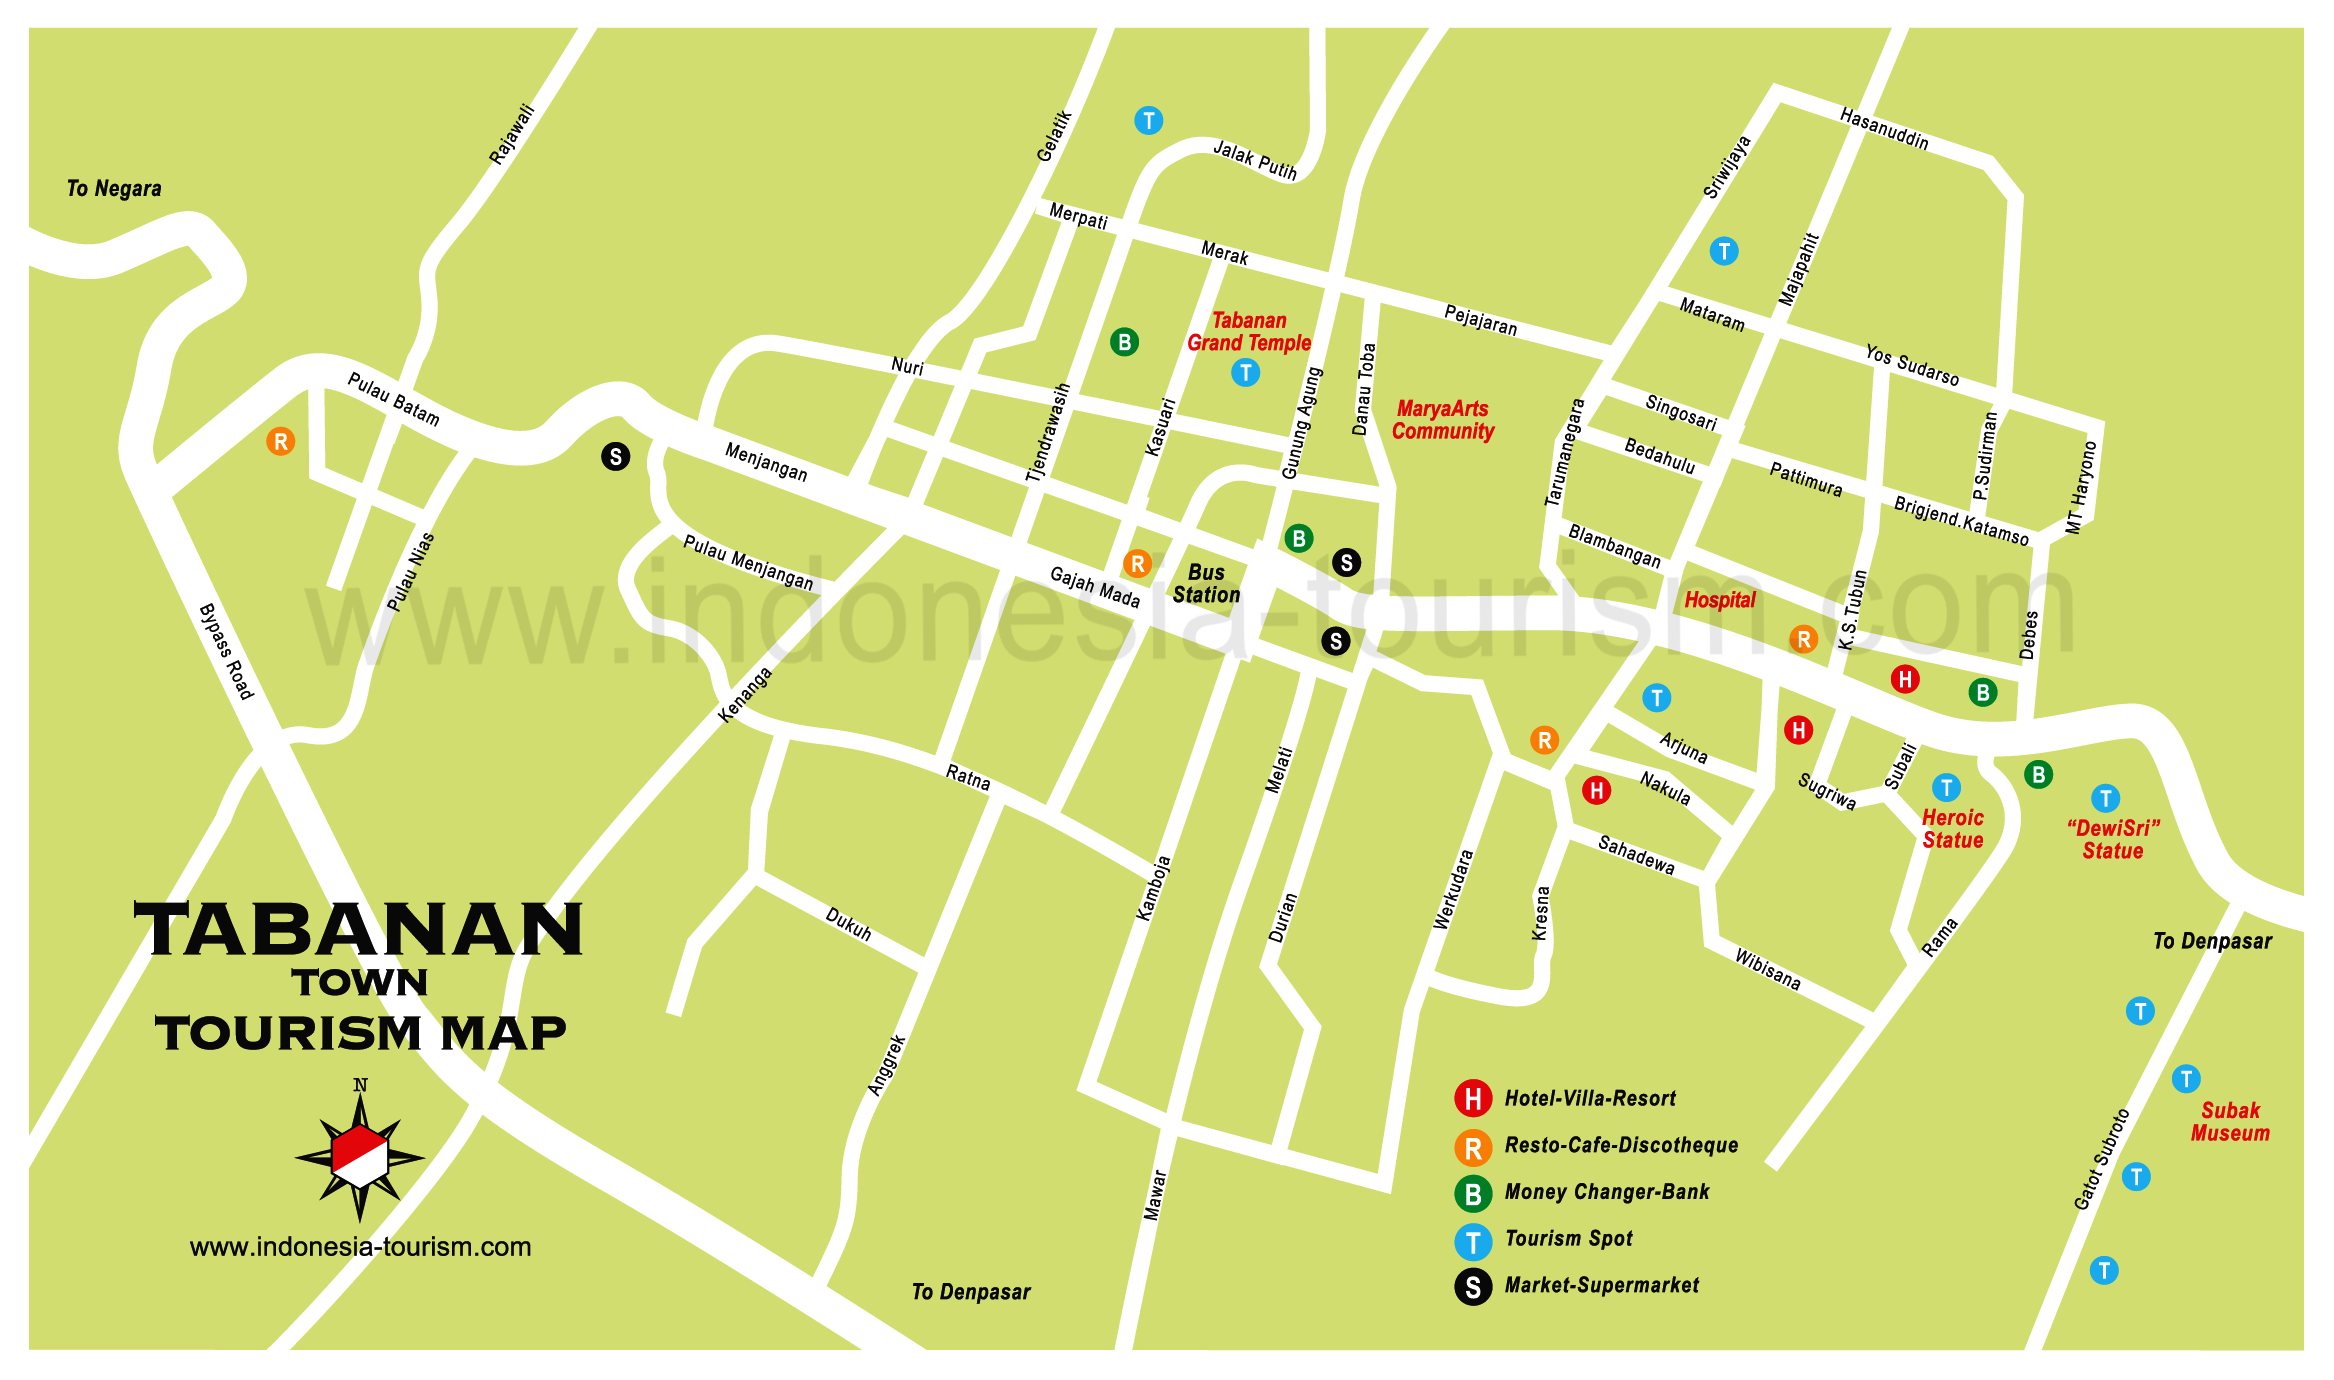 Bali weather forecast and bali map info detail tabanan location detail tabanan area location map for visitorlocation map of tabanan area regencytabanan thecheapjerseys Choice Image